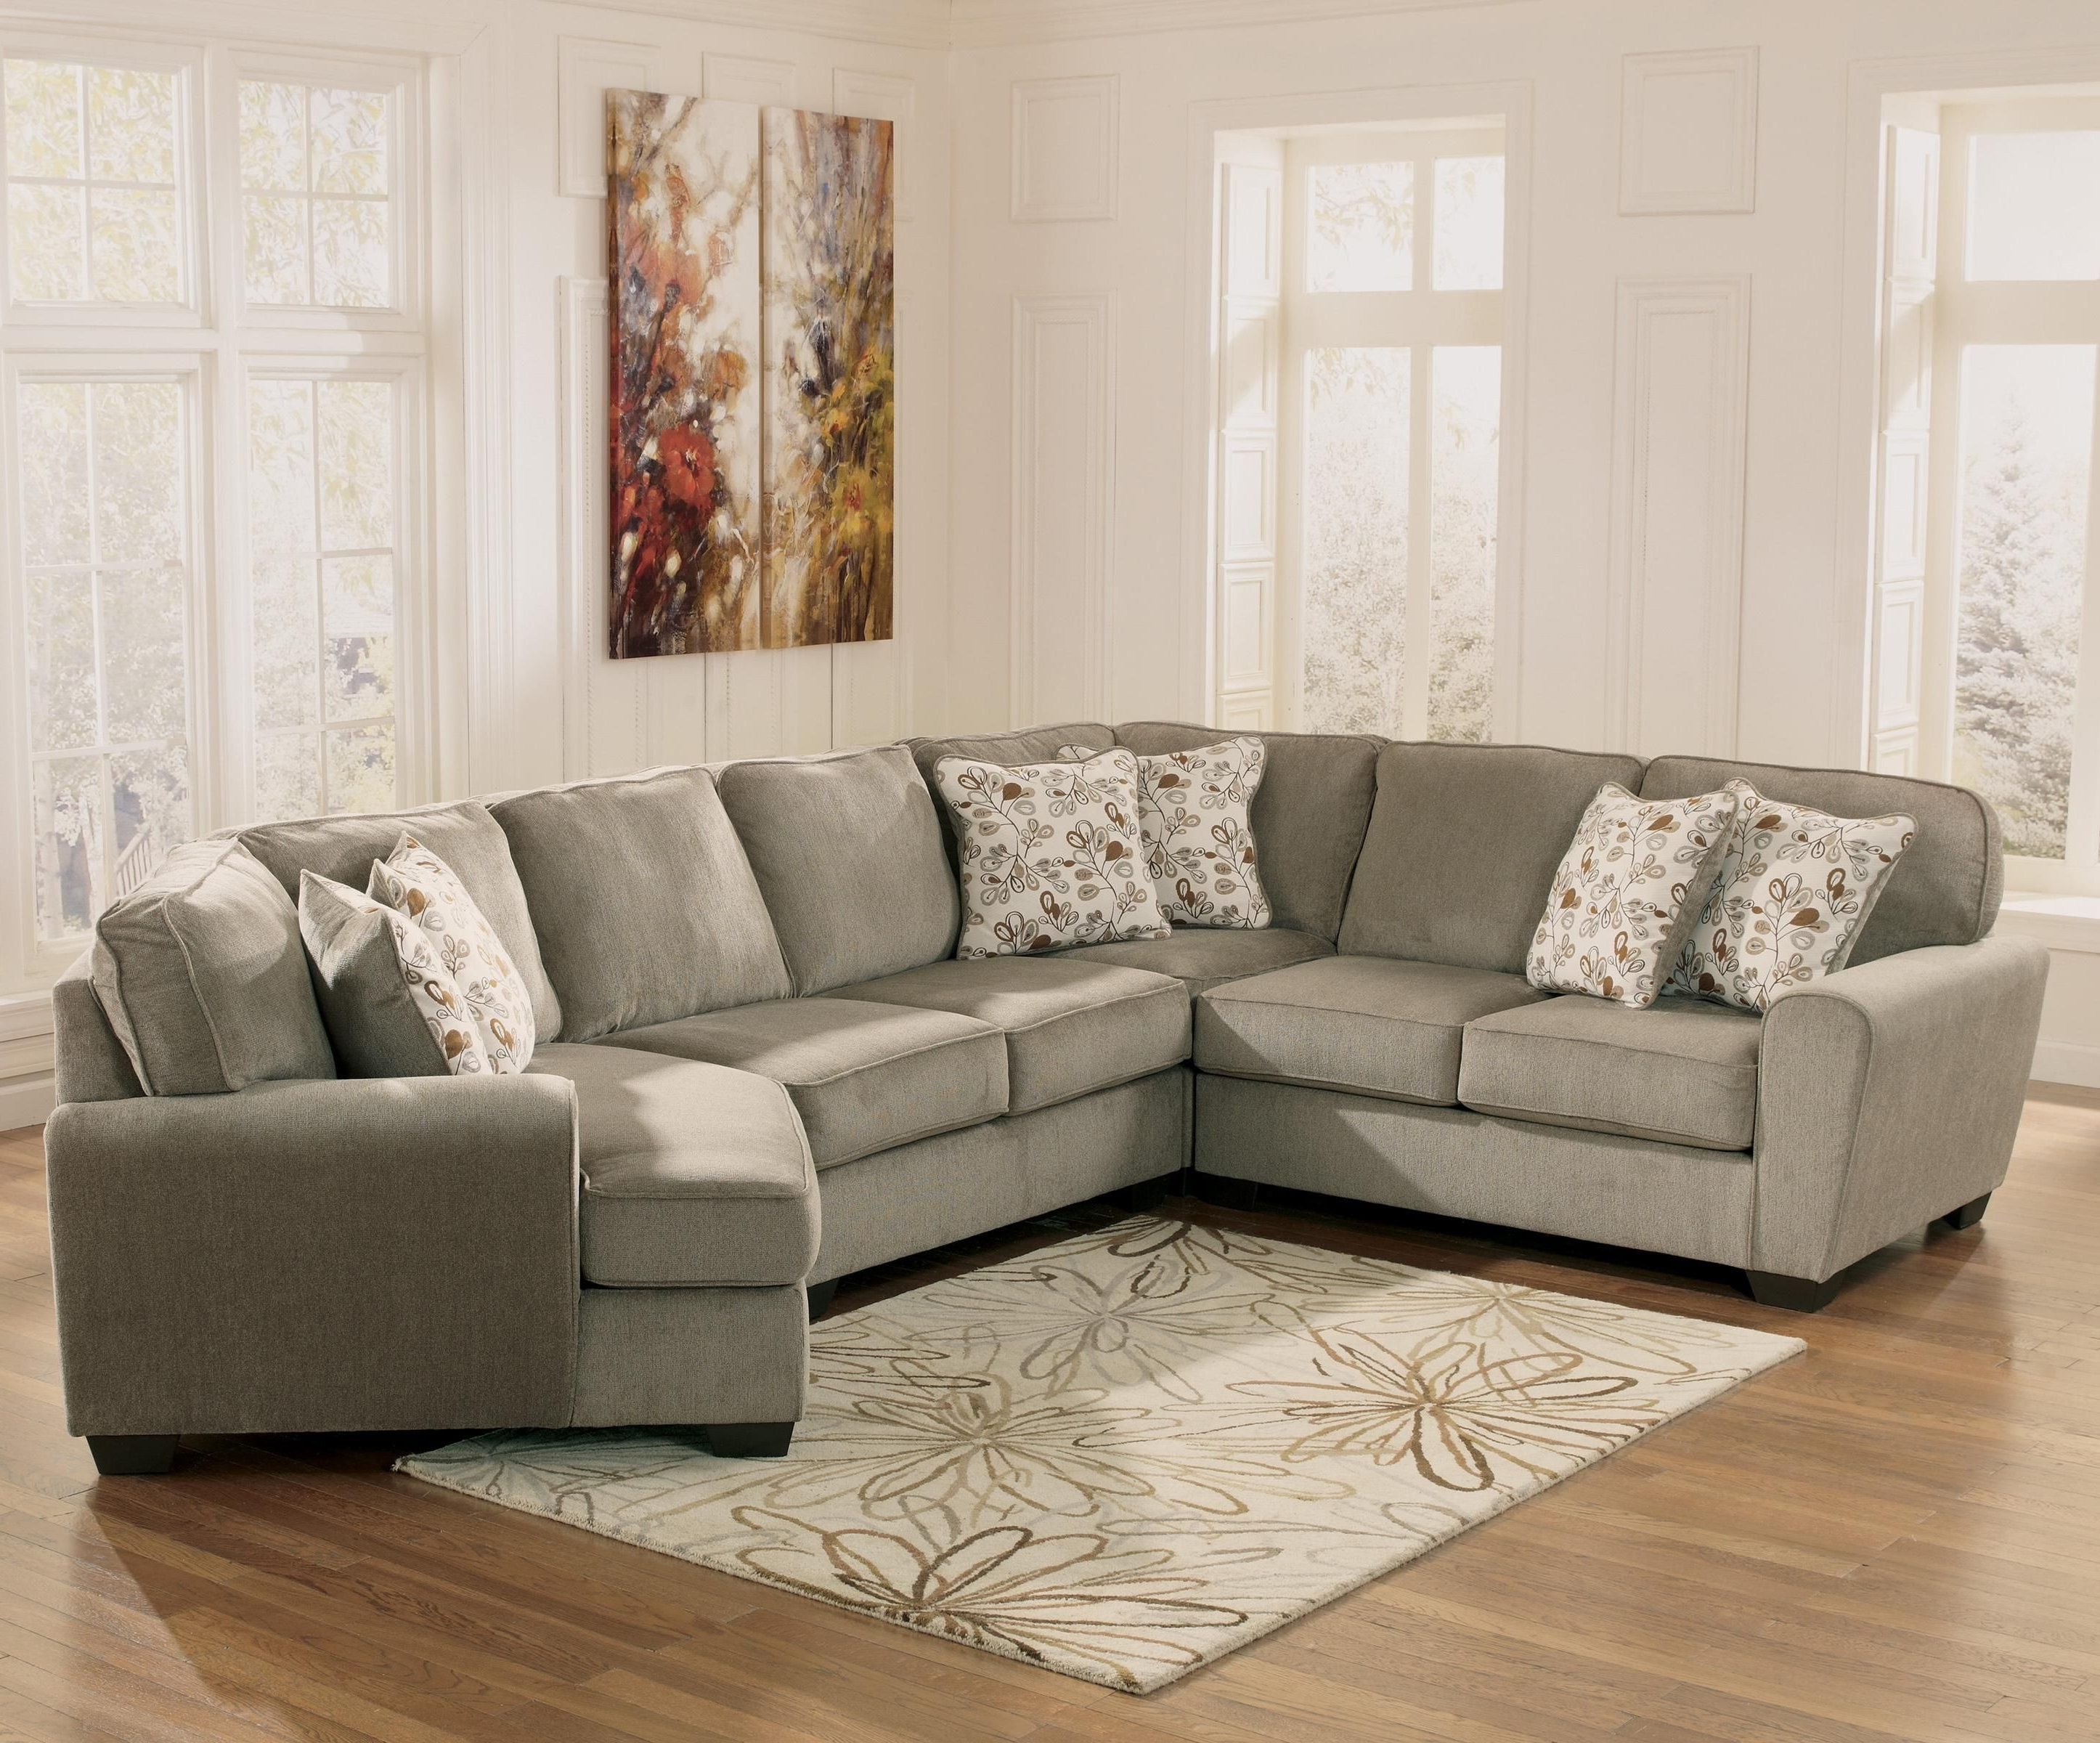 Patola Park – Patina 4 Piece Small Sectional With Right Cuddler In Favorite Jackson Ms Sectional Sofas (View 13 of 20)